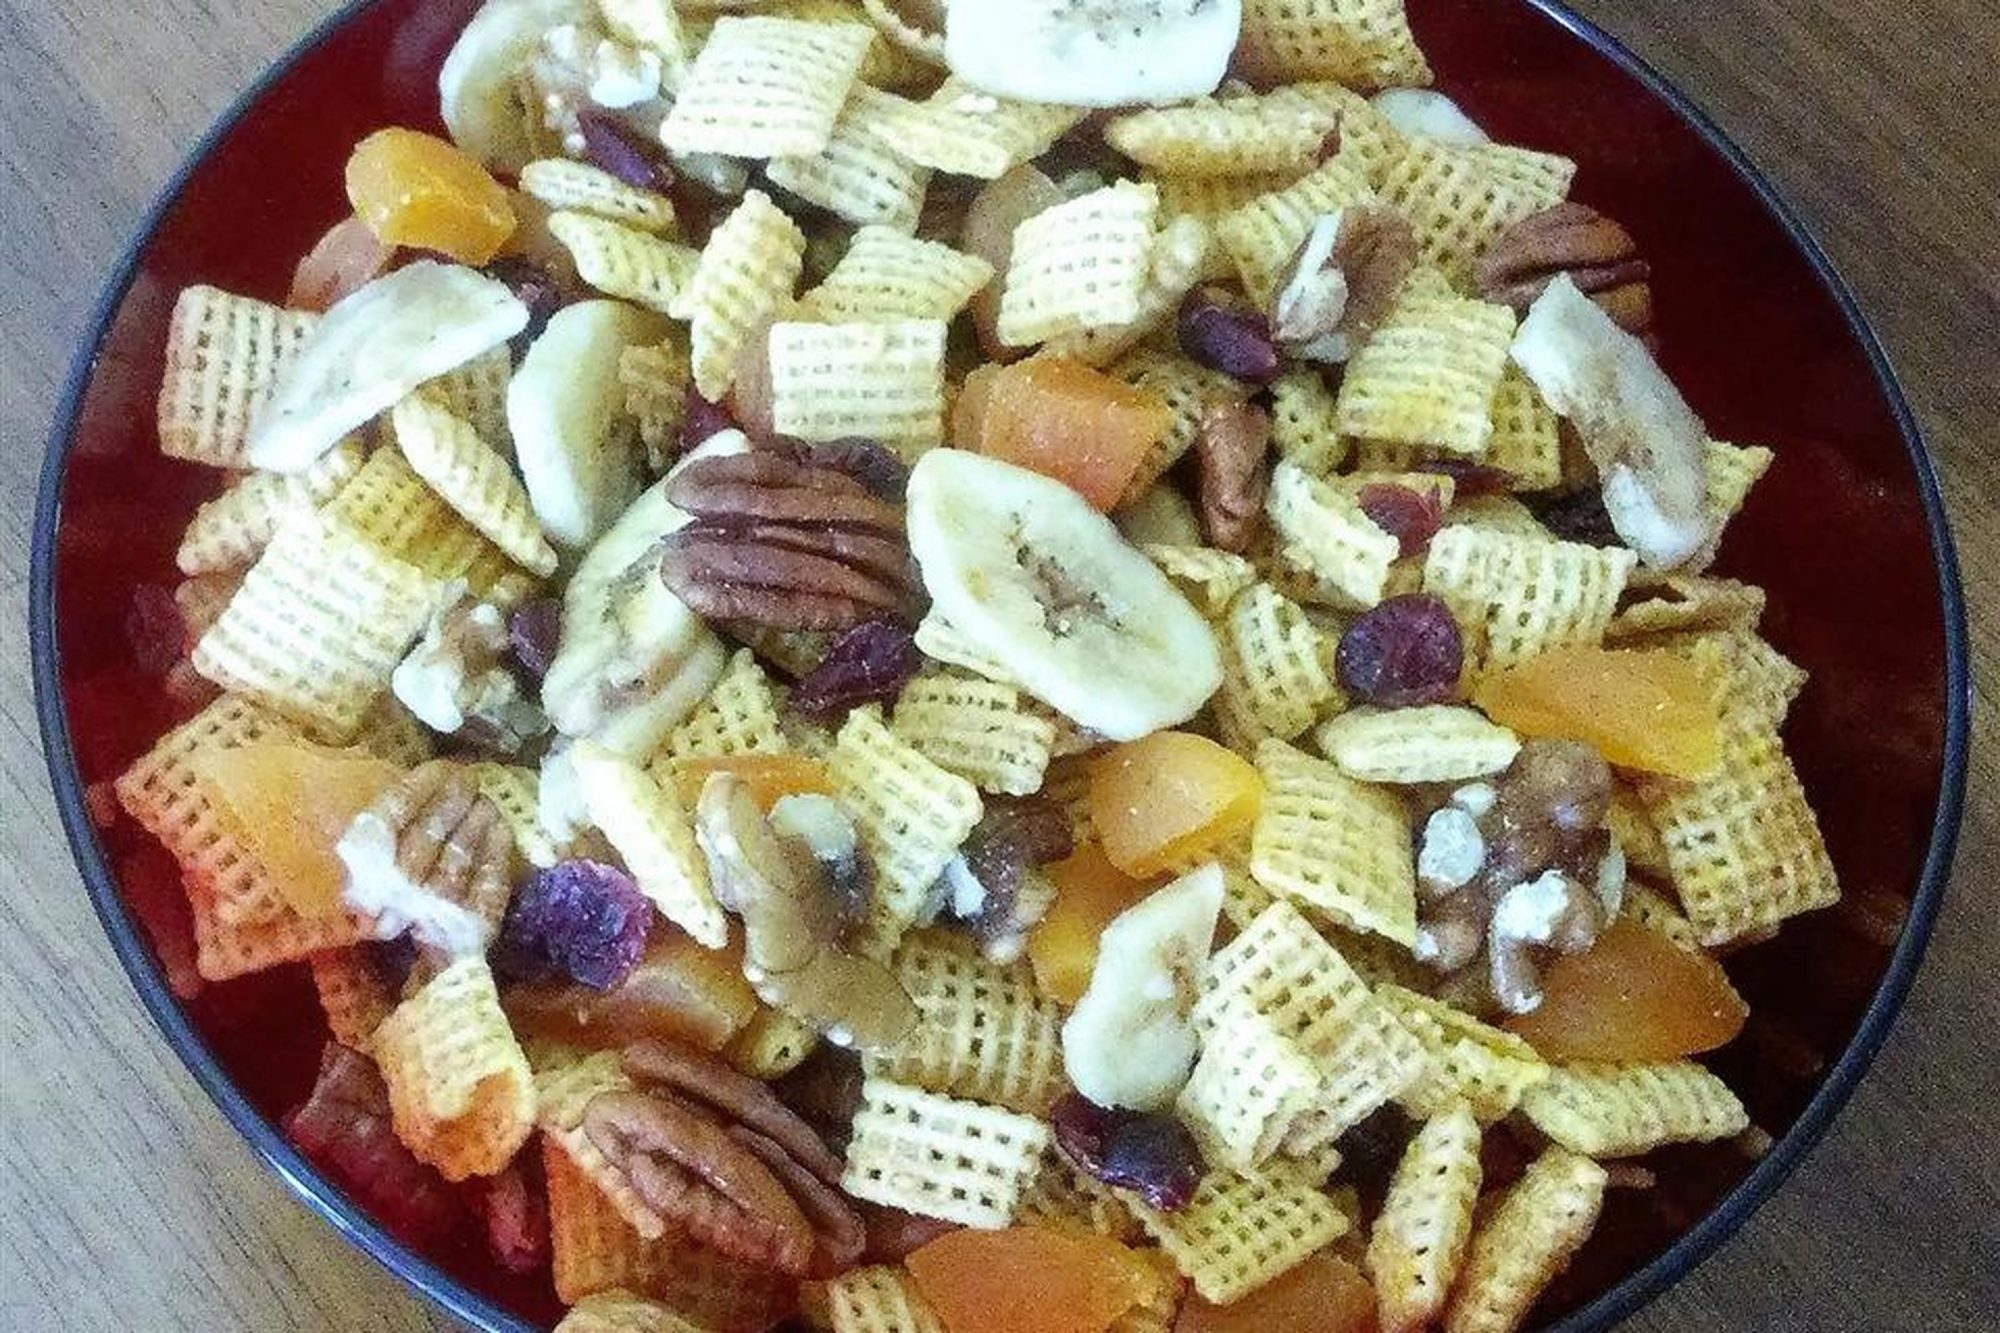 Snack Mix with cereal and bananas and nuts